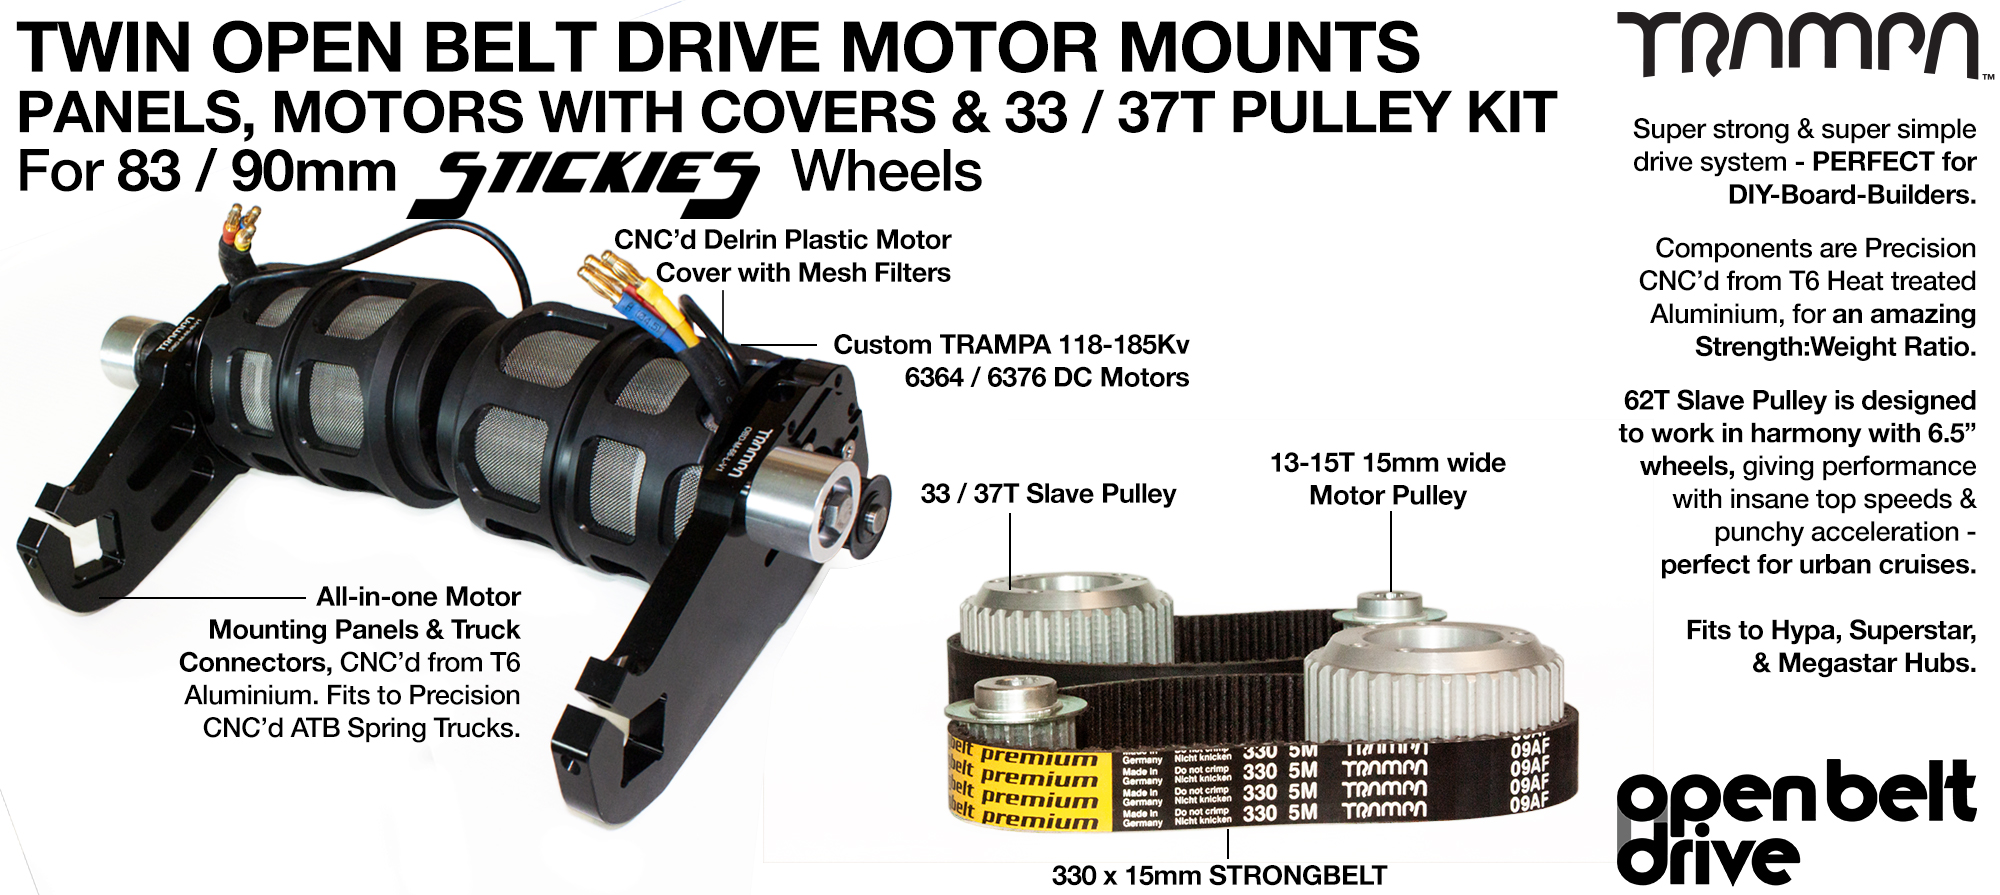 66T OBD Motor Mount with 33 / 37T Pulley kit, Motor & Filters  - TWIN